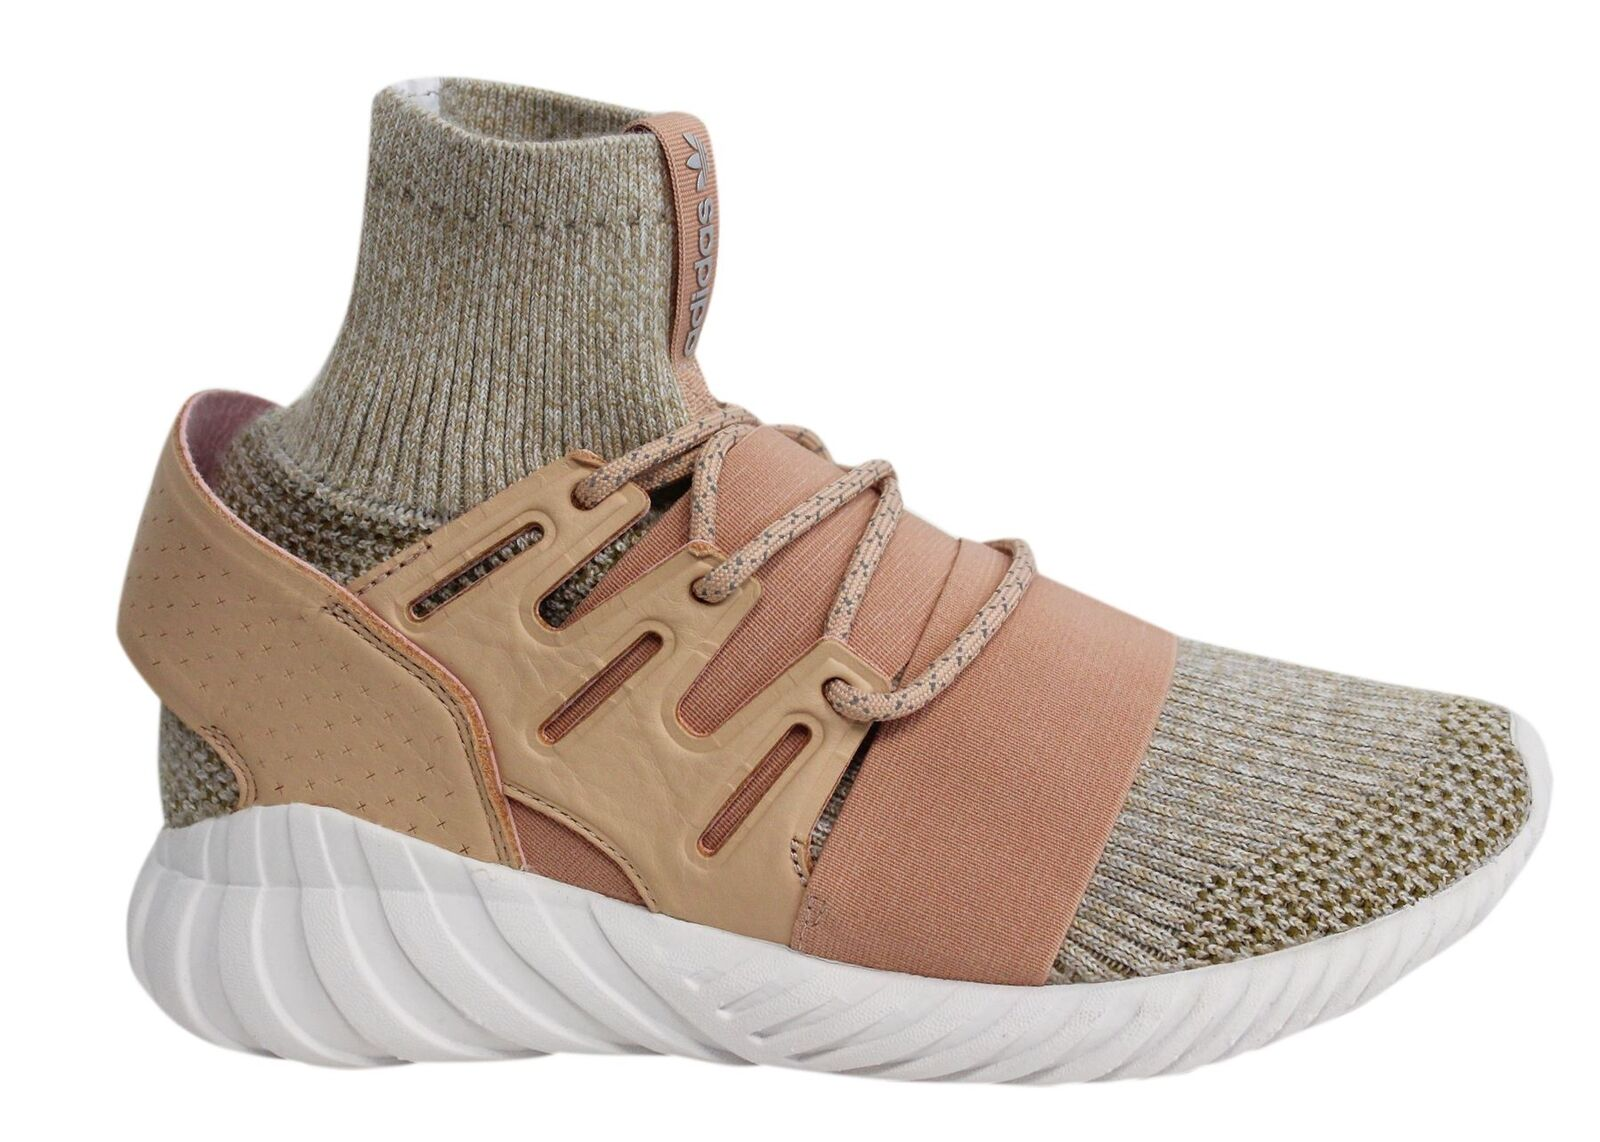 Adidas Tubular Doom PK Lace Up Brown Sock Fit Mens Trainers BB2390 M3 Cheap women's shoes women's shoes